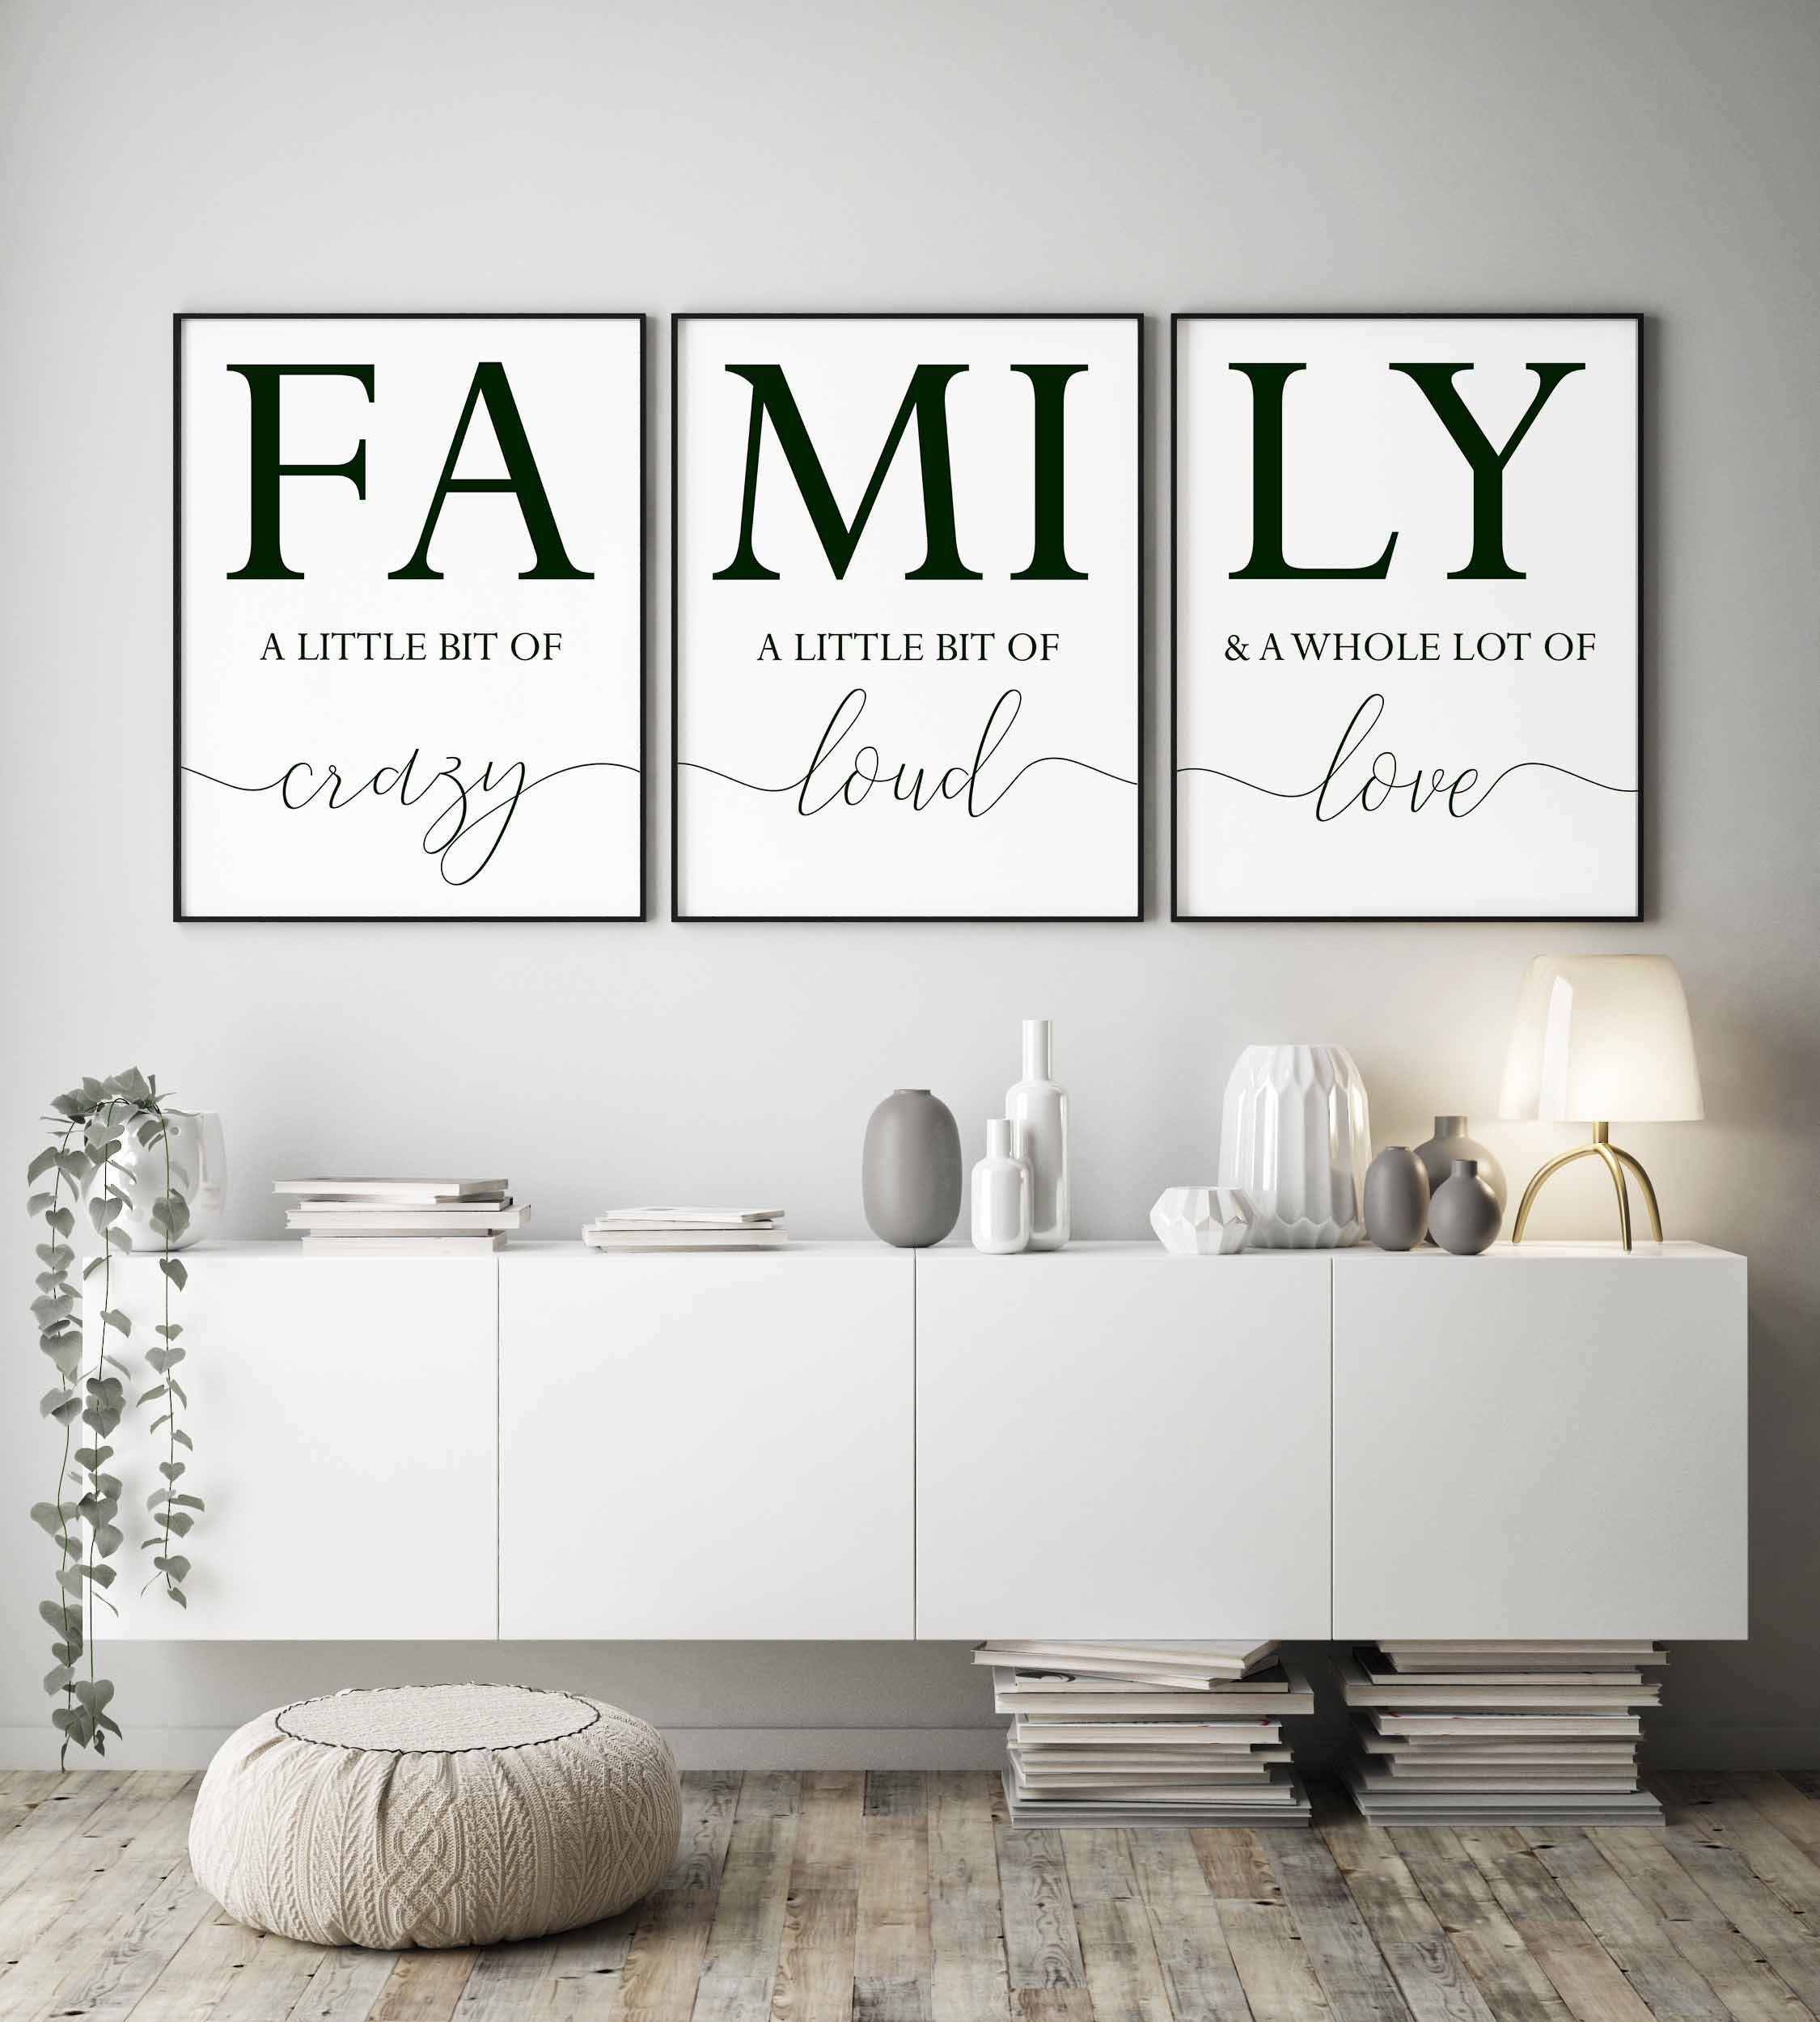 Family Signfamily A Little Bit Of Crazy Printset Of 3 Etsy Family Room Walls Wall Decor Bedroom Living Room Wall